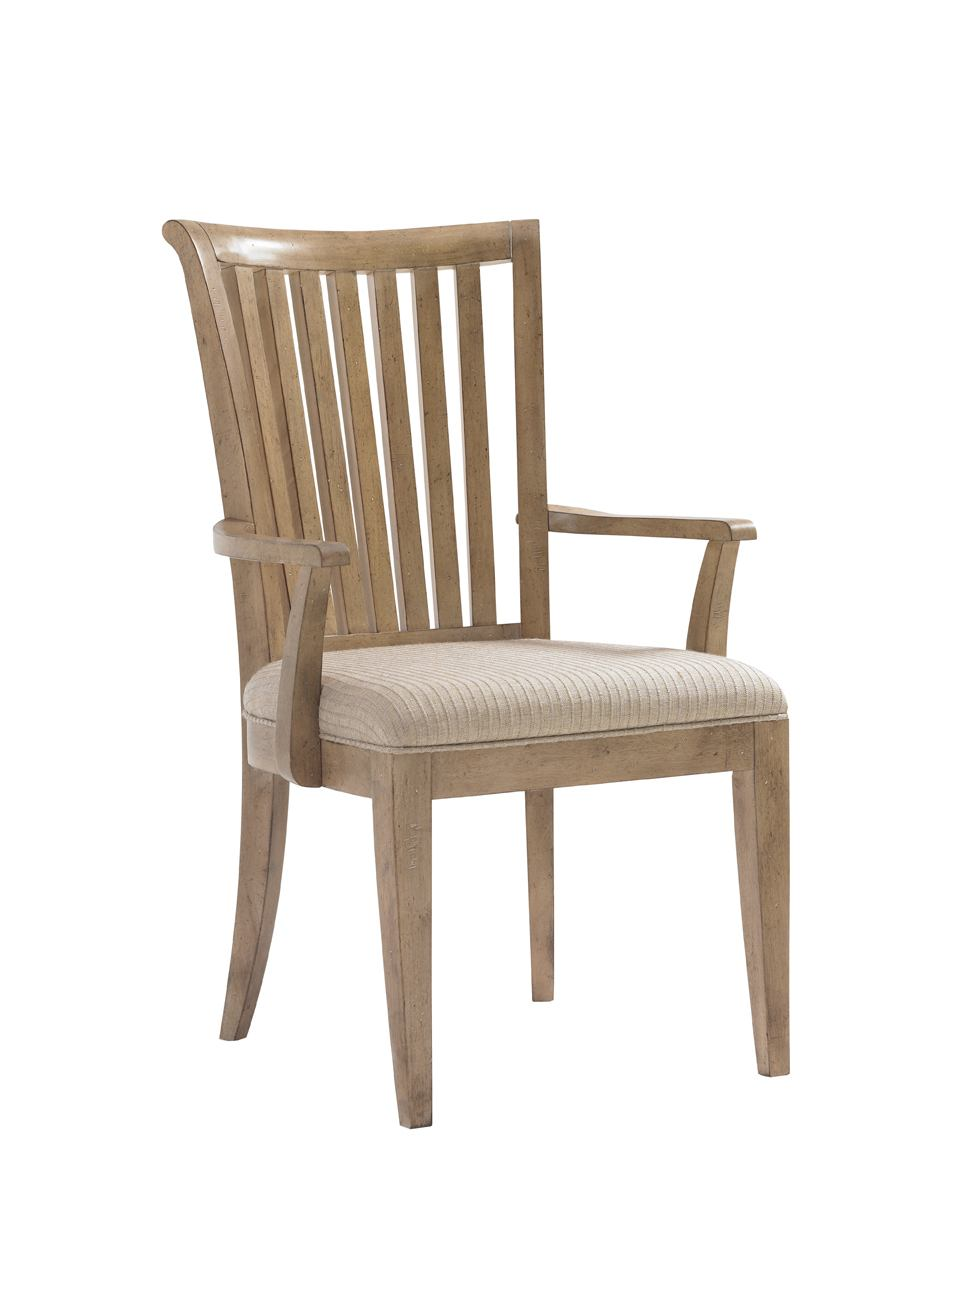 Lexington Monterey Sands Alameda Arm Chair (Set of 2) in Sandy Brown 830-881-01